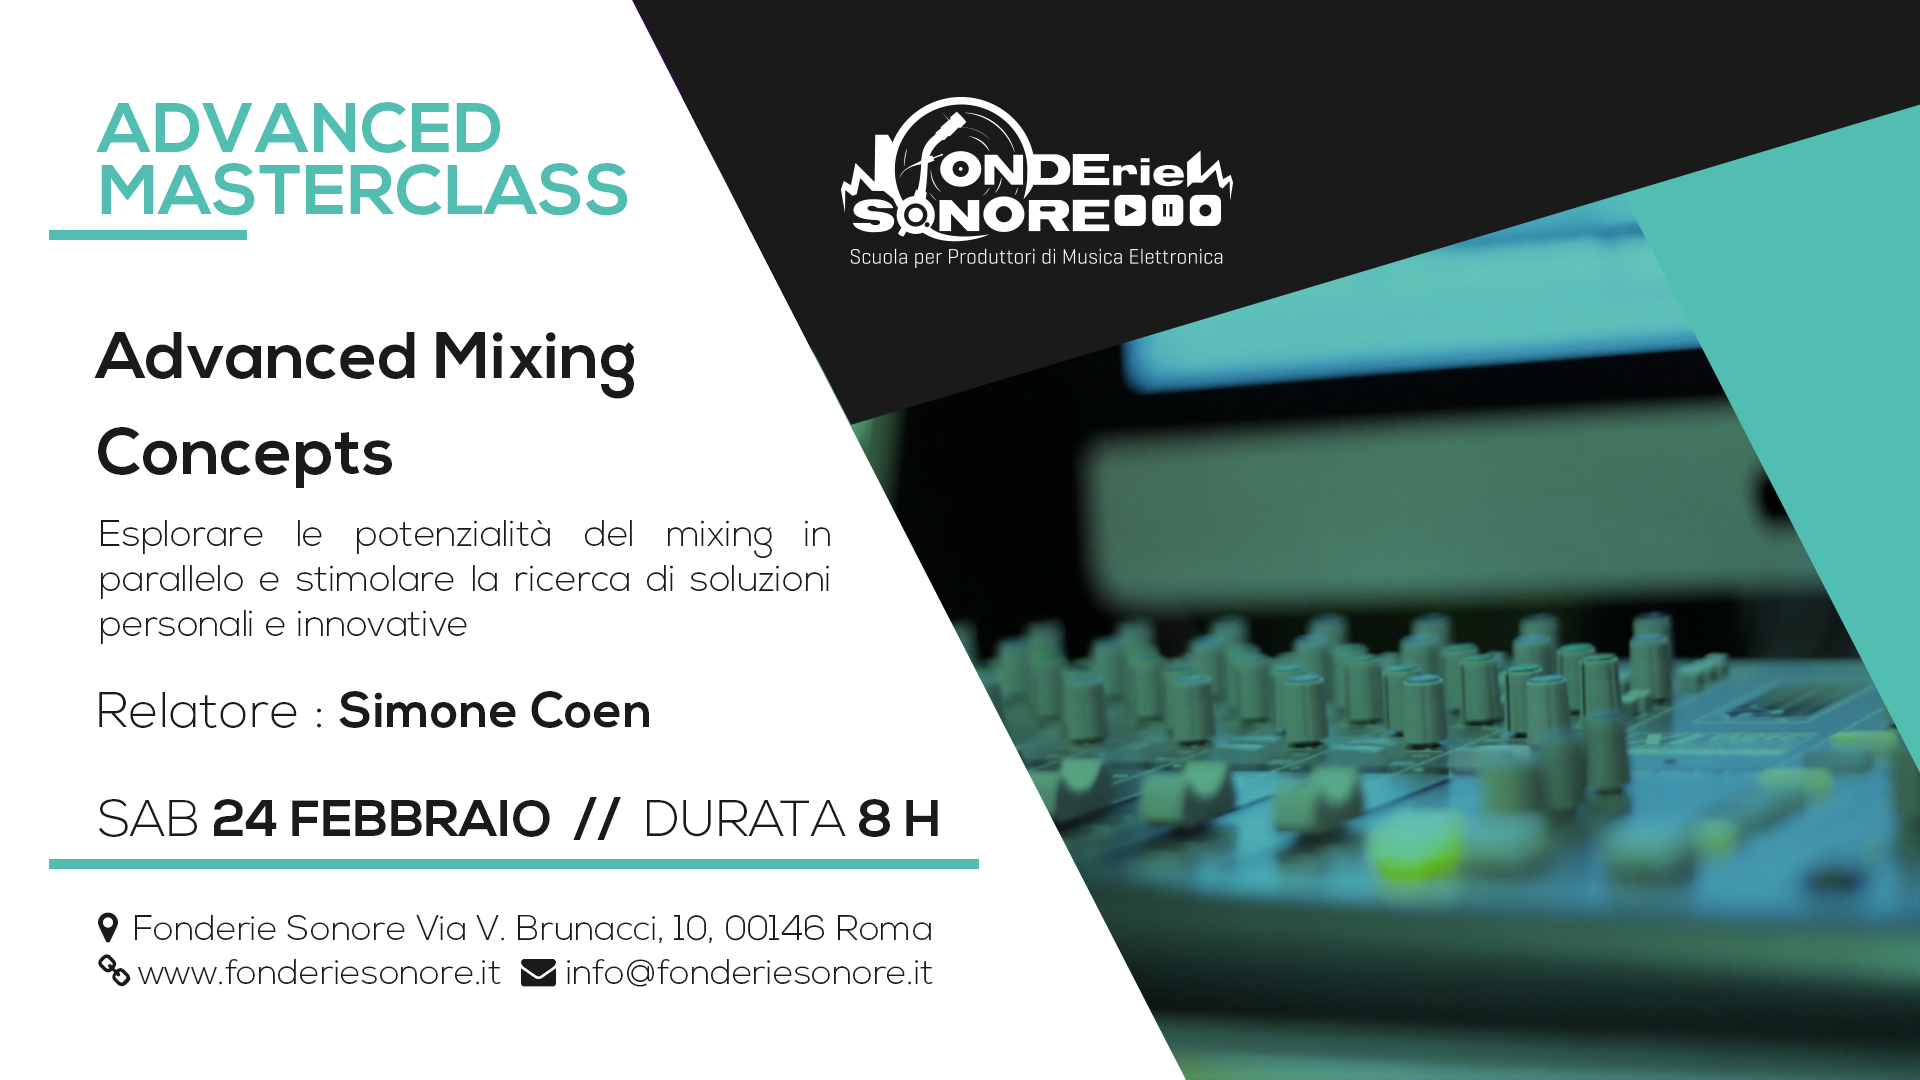 Masterclass - Advanced Mixing Concepts